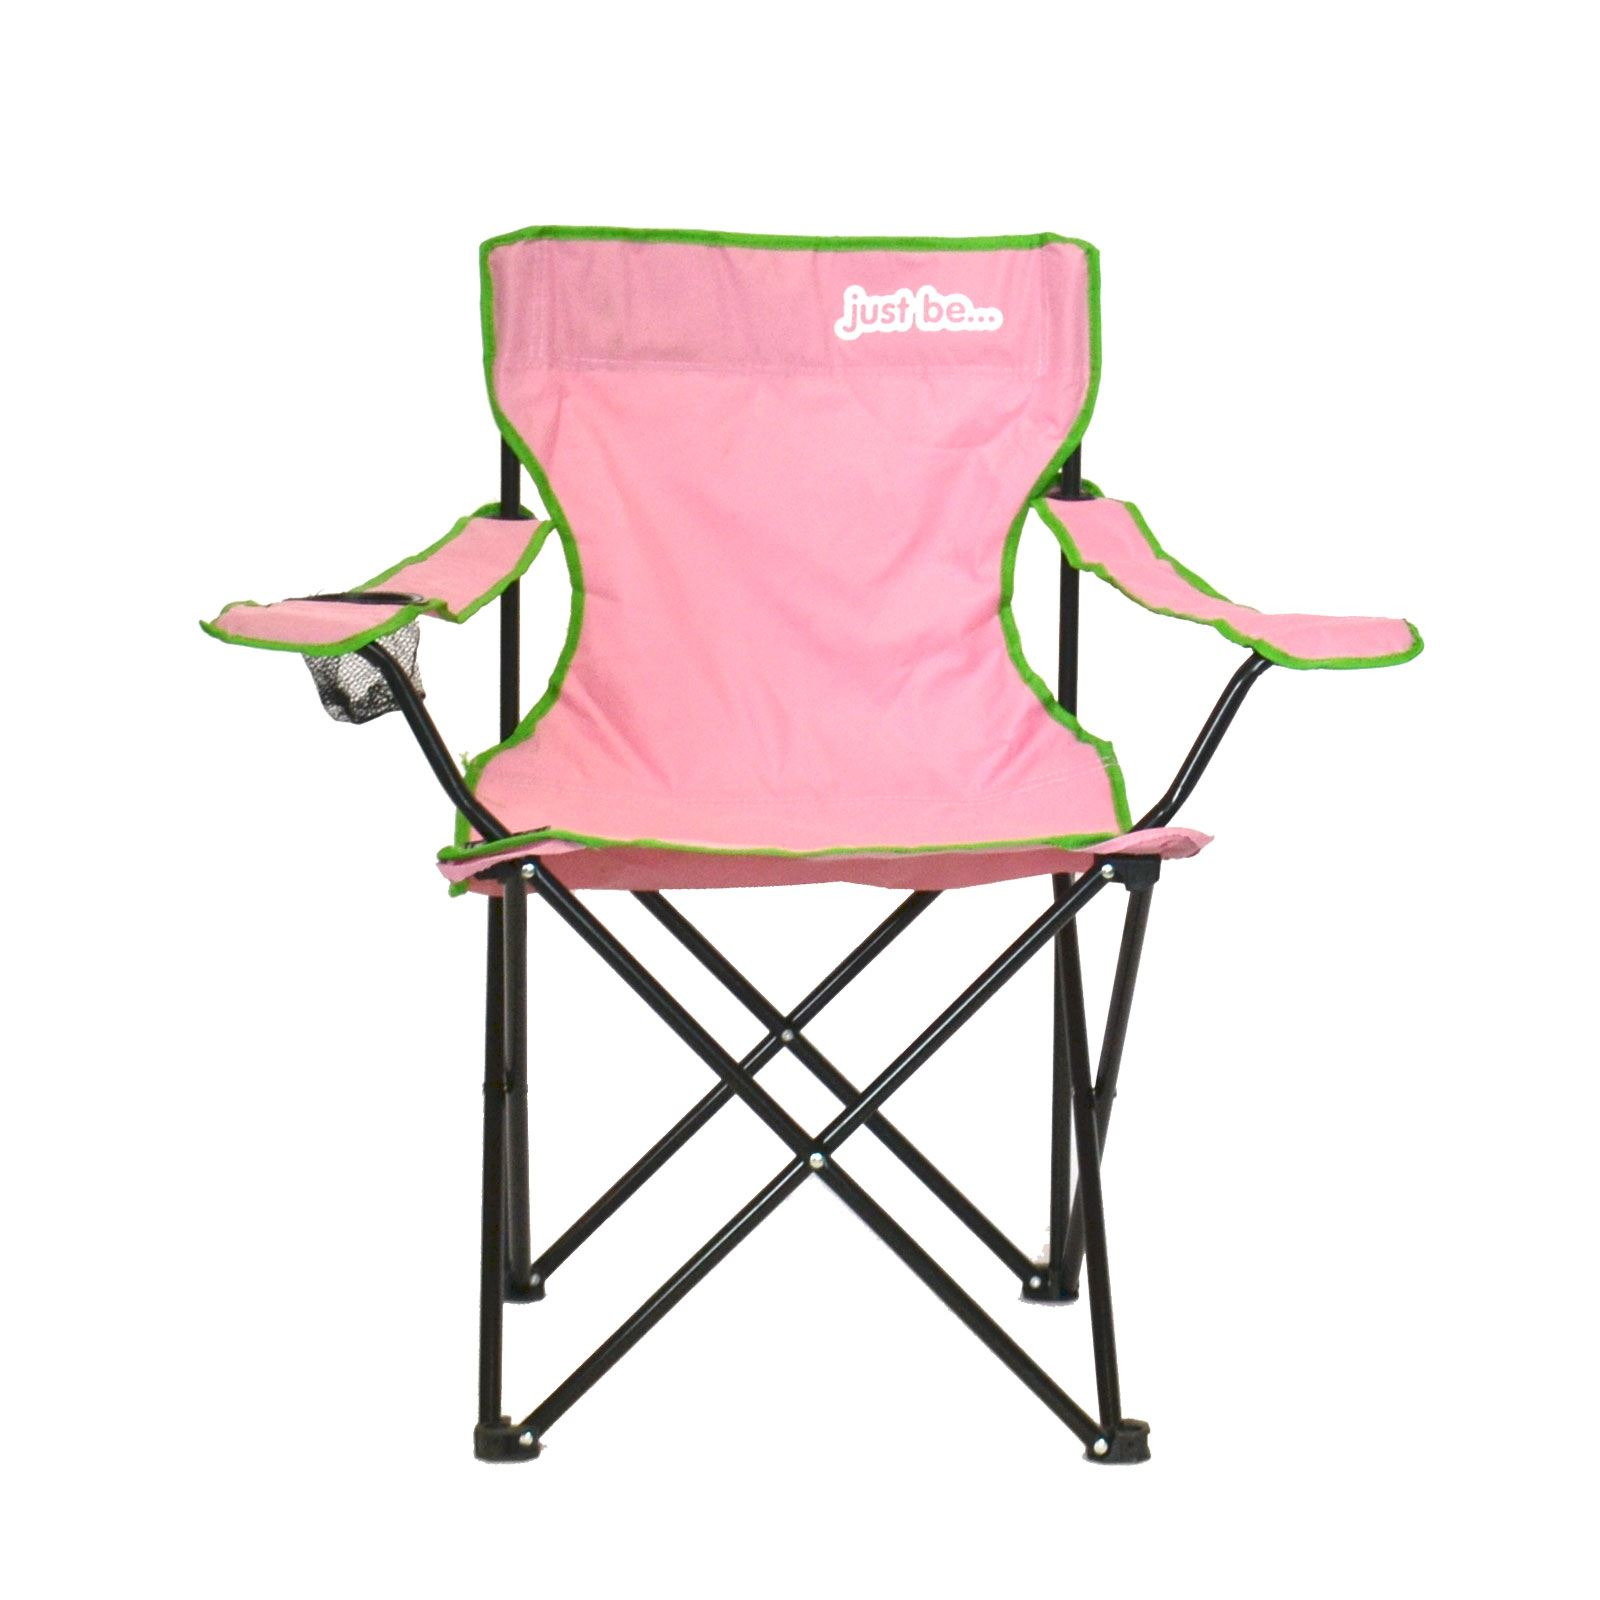 Fold Up Outdoor Chairs Folding Camping Chair Festival Garden Foldable Fold Up